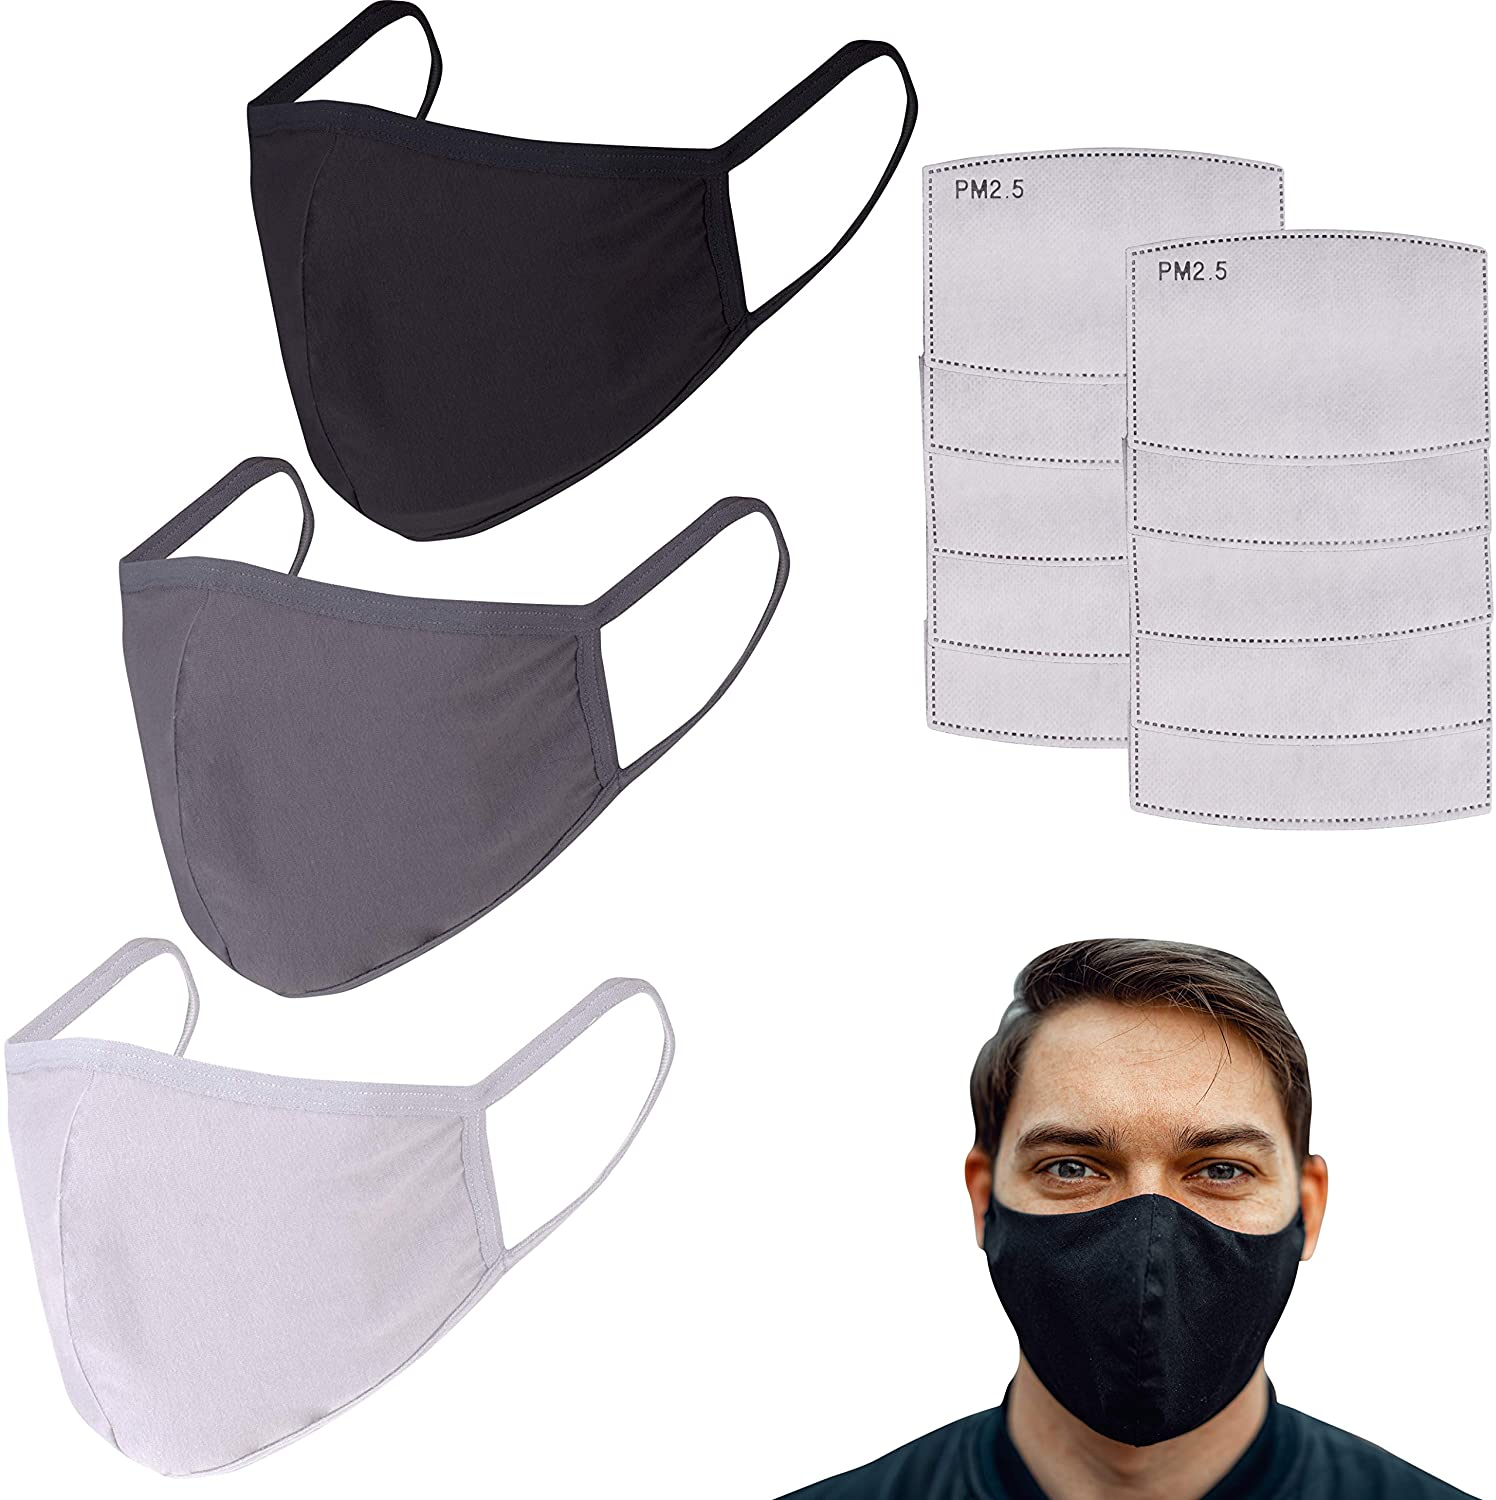 shopify-Pack of 3 Cotton Reusable Face Masks - 3 Masks with 10 Filters-1